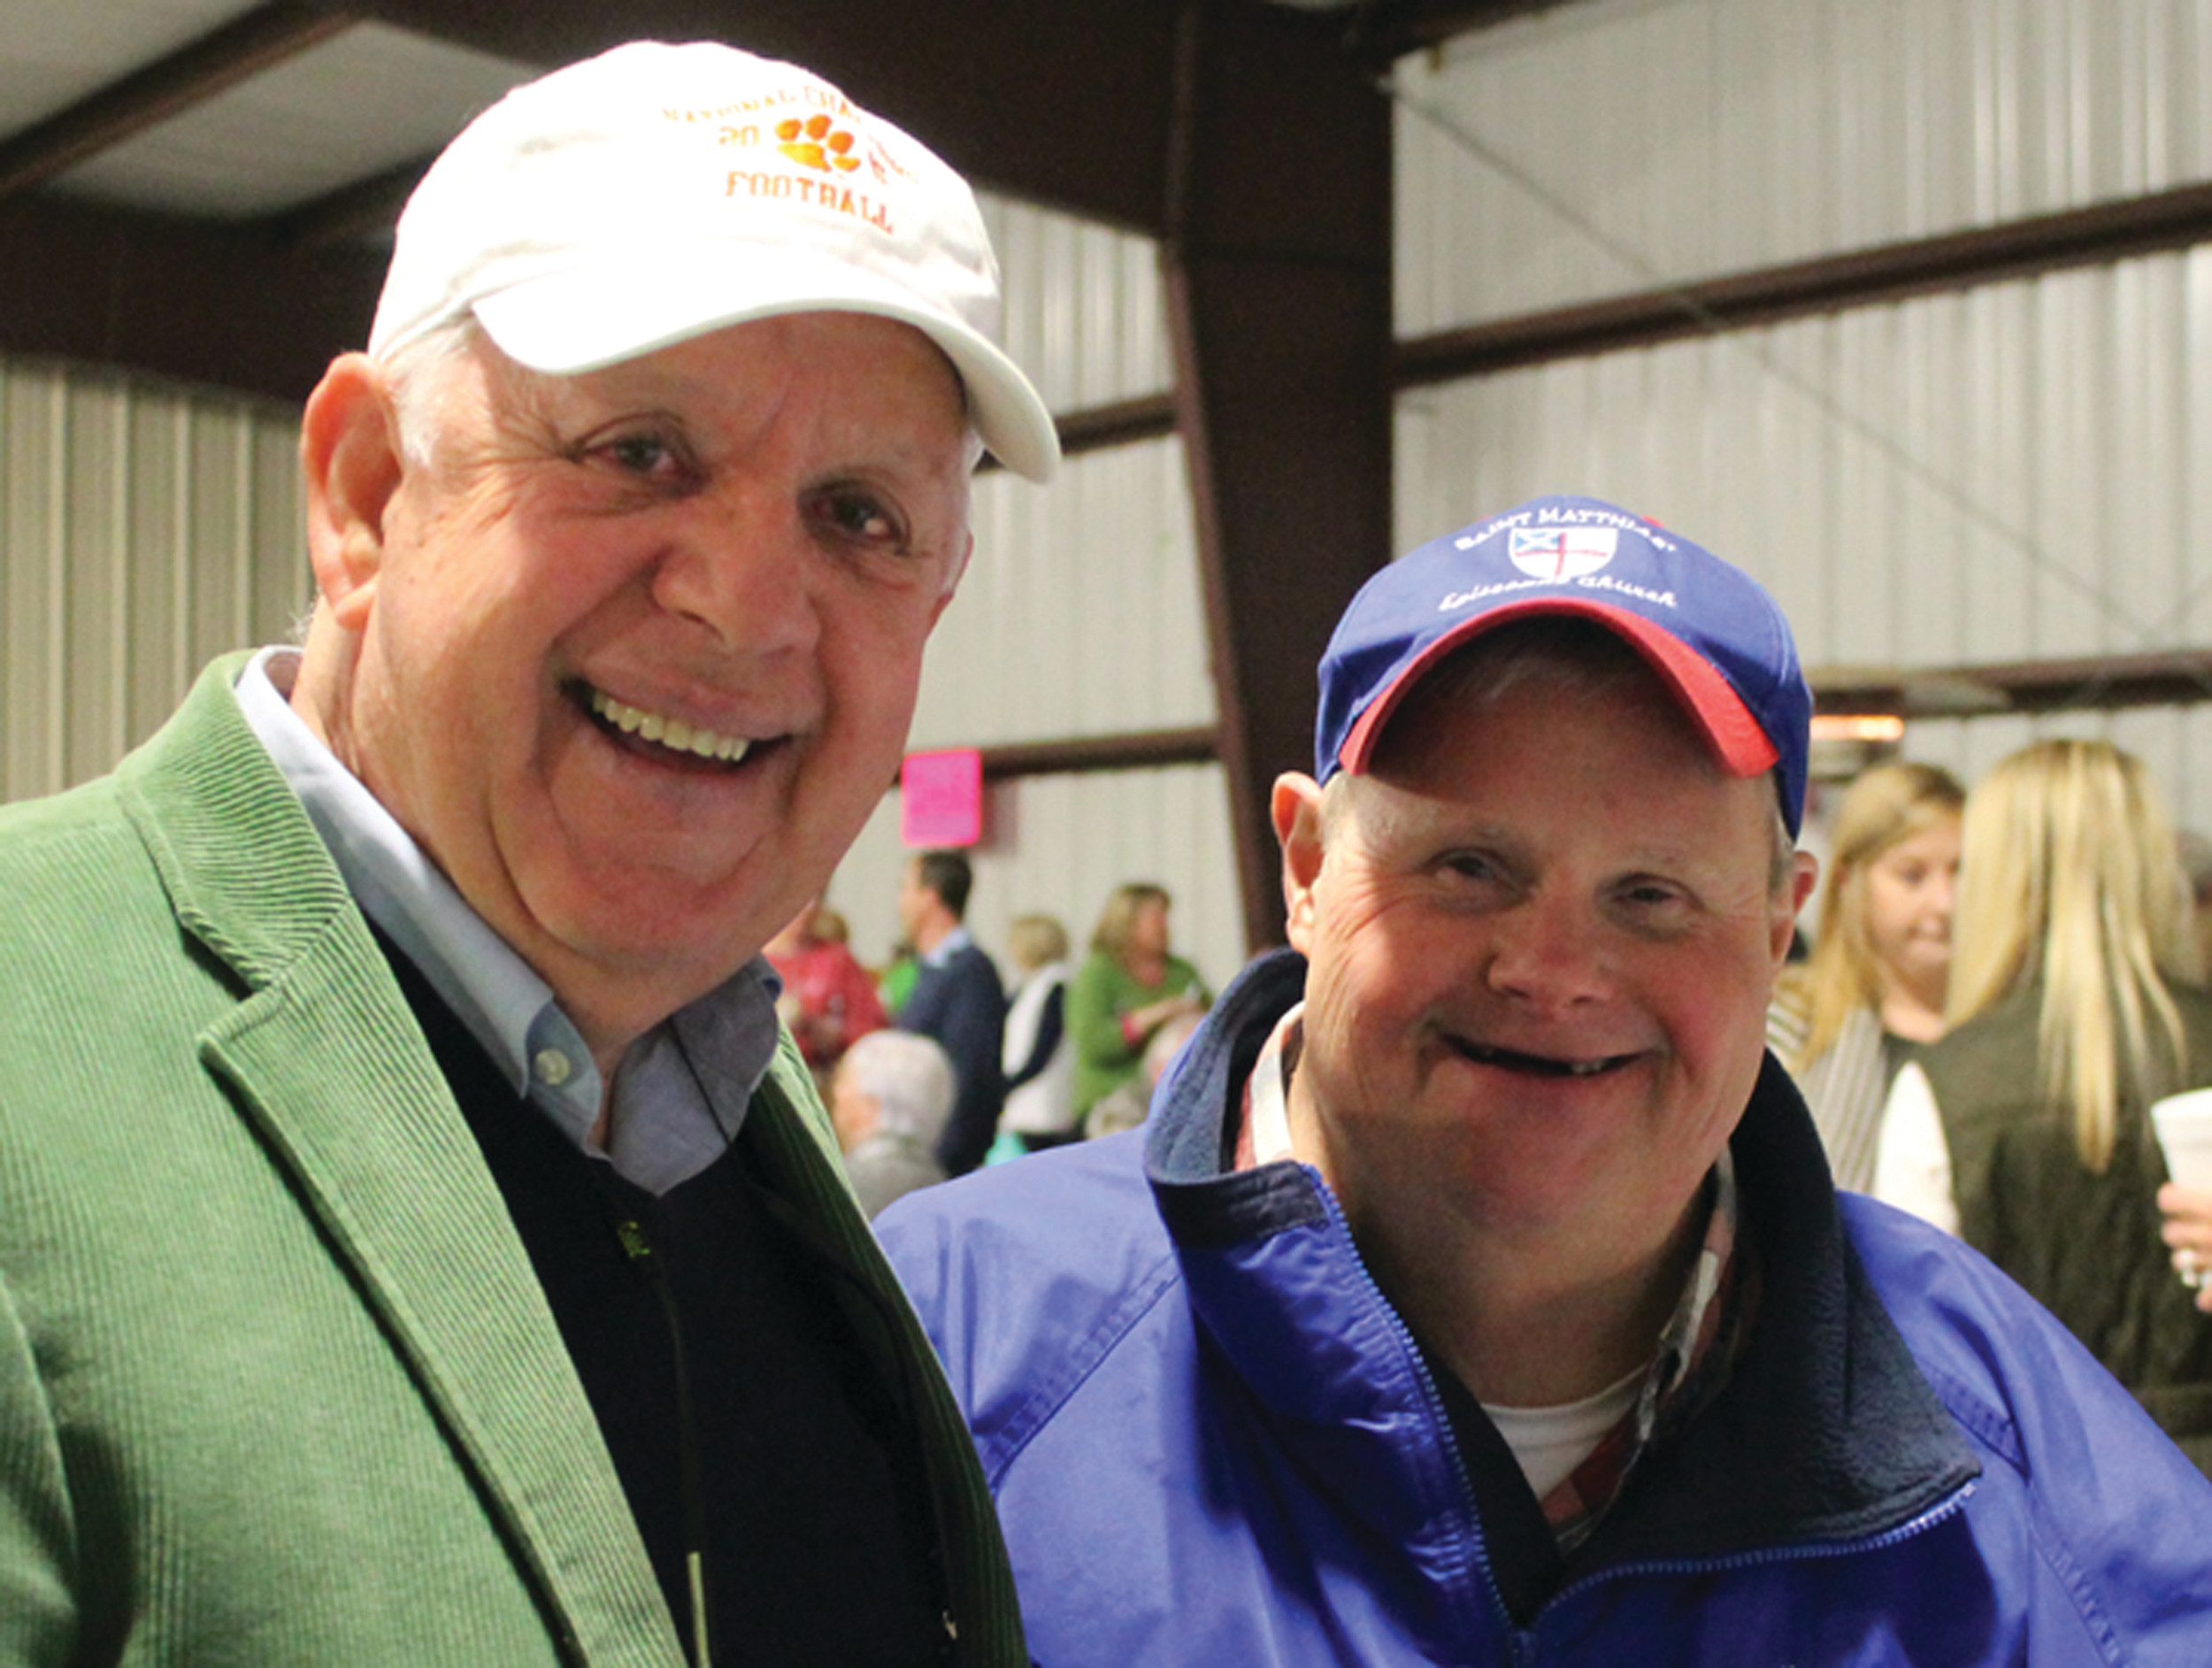 Summerton resident Jim Darby and Clarendon County's own Bubba Davis enjoyed Saturday night's St. Matthias Oyster Roast.